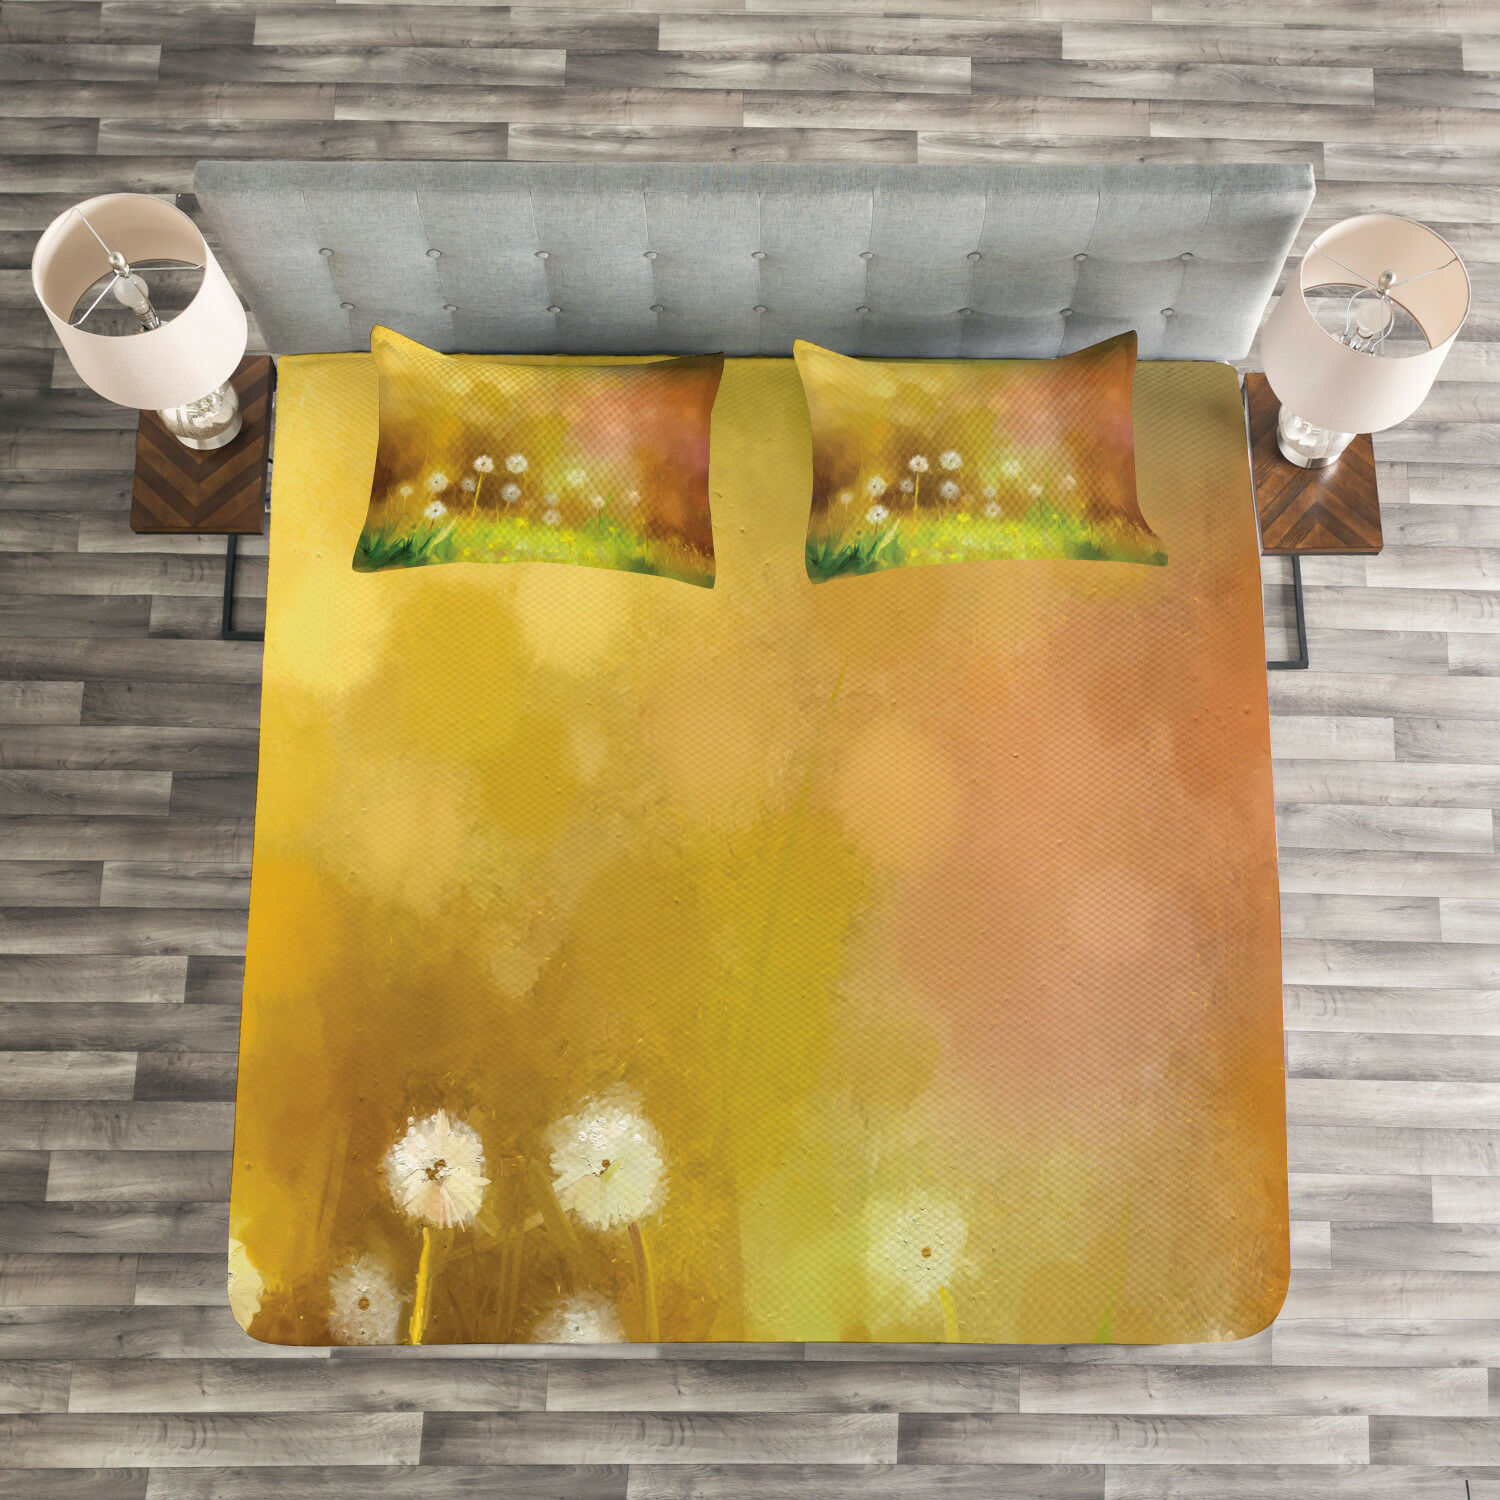 Nature Quilted Bedspread & Pillow Shams Set, Oil Painting Effect Art Print